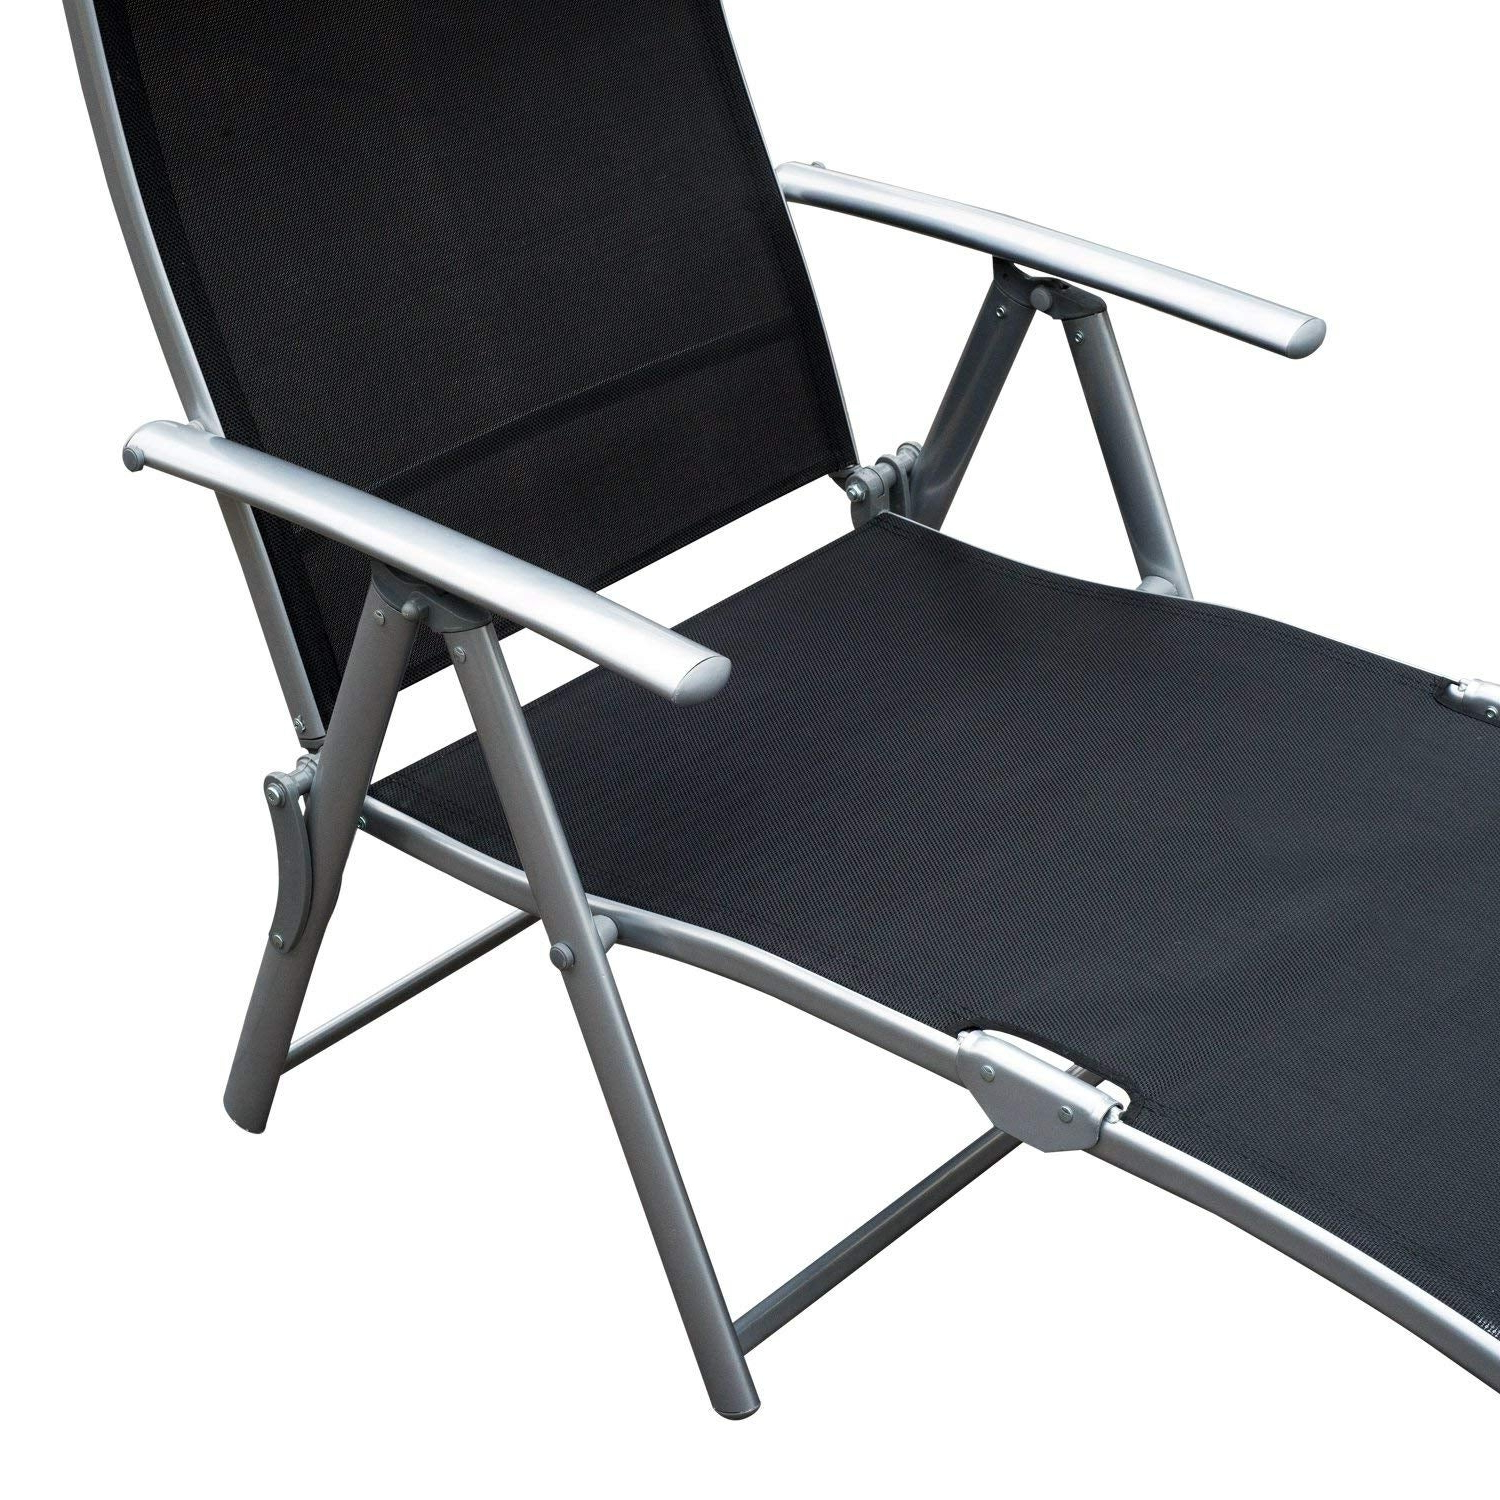 Most Recent Steel Sling Fabric Outdoor Folding Chaise Lounges Regarding Outsunny Steel Sling Fabric Outdoor Folding Chaise Lounge Chair Recliner – Black (View 8 of 25)